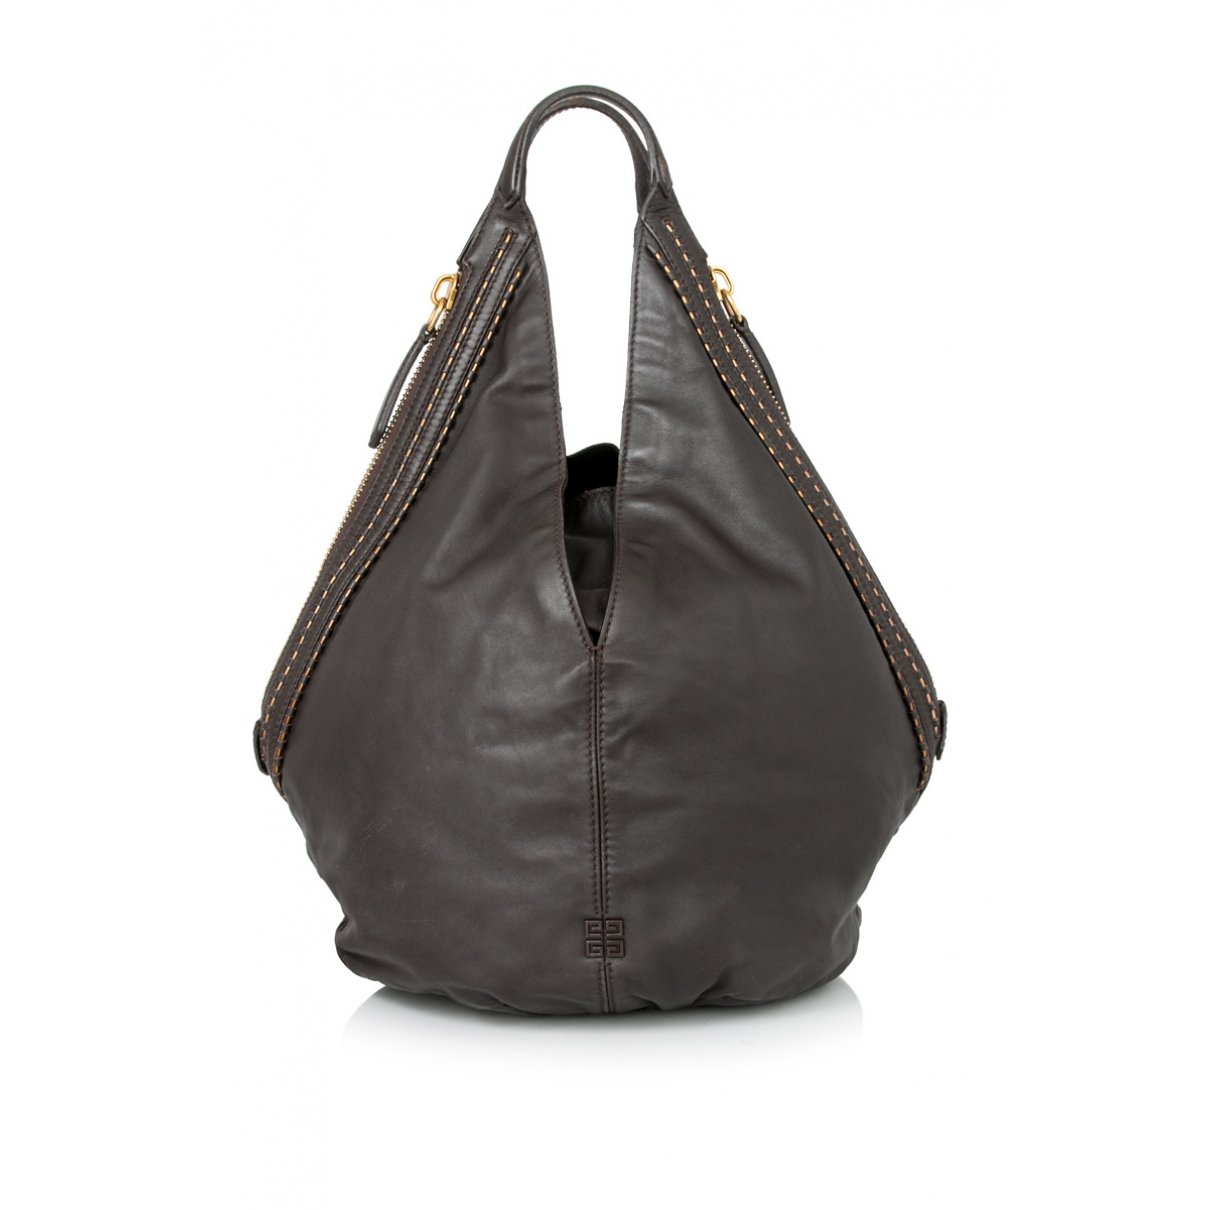 Givenchy \N Brown Leather handbag for Women \N